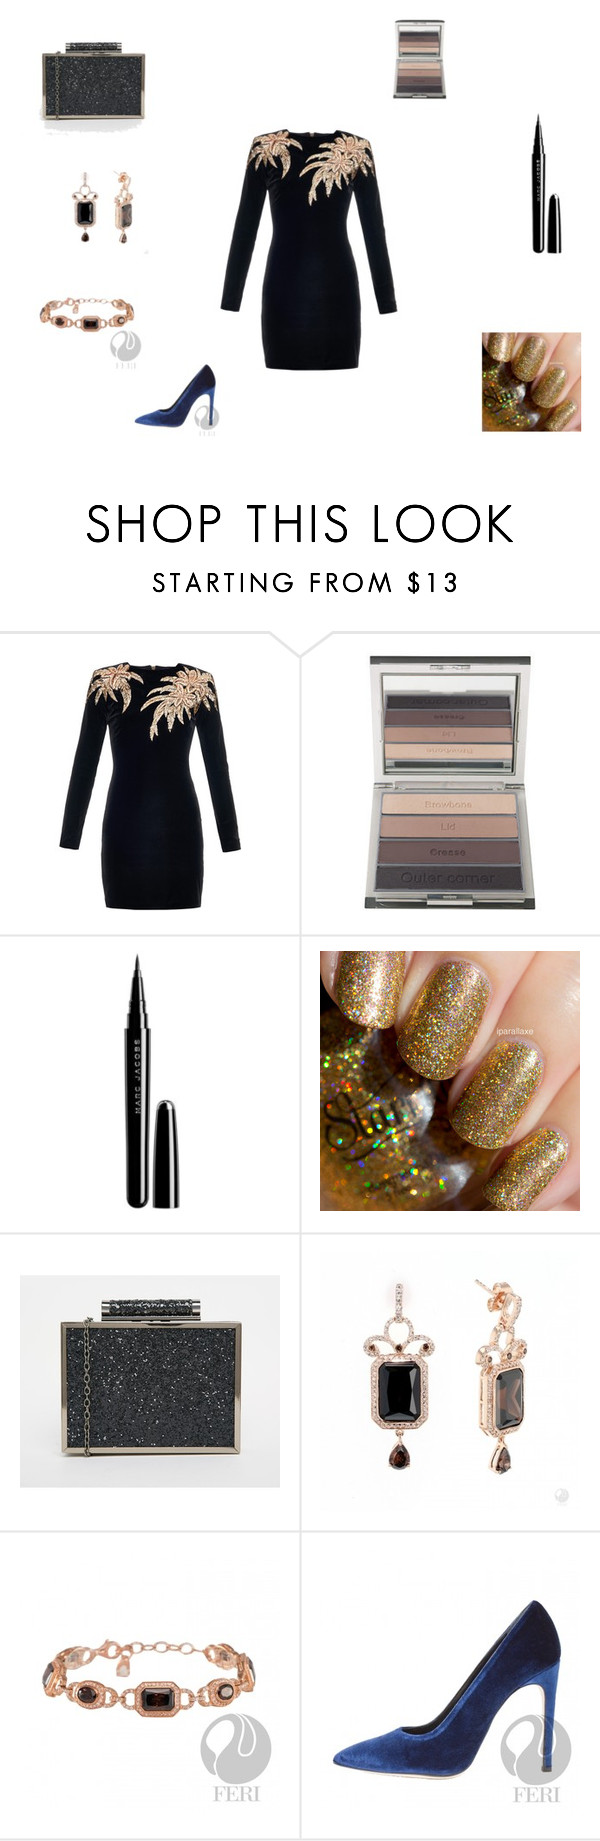 """""""Untitled #395"""" by panicsam ❤ liked on Polyvore featuring Balmain, CARGO, Marc Jacobs and BeckSöndergaard"""